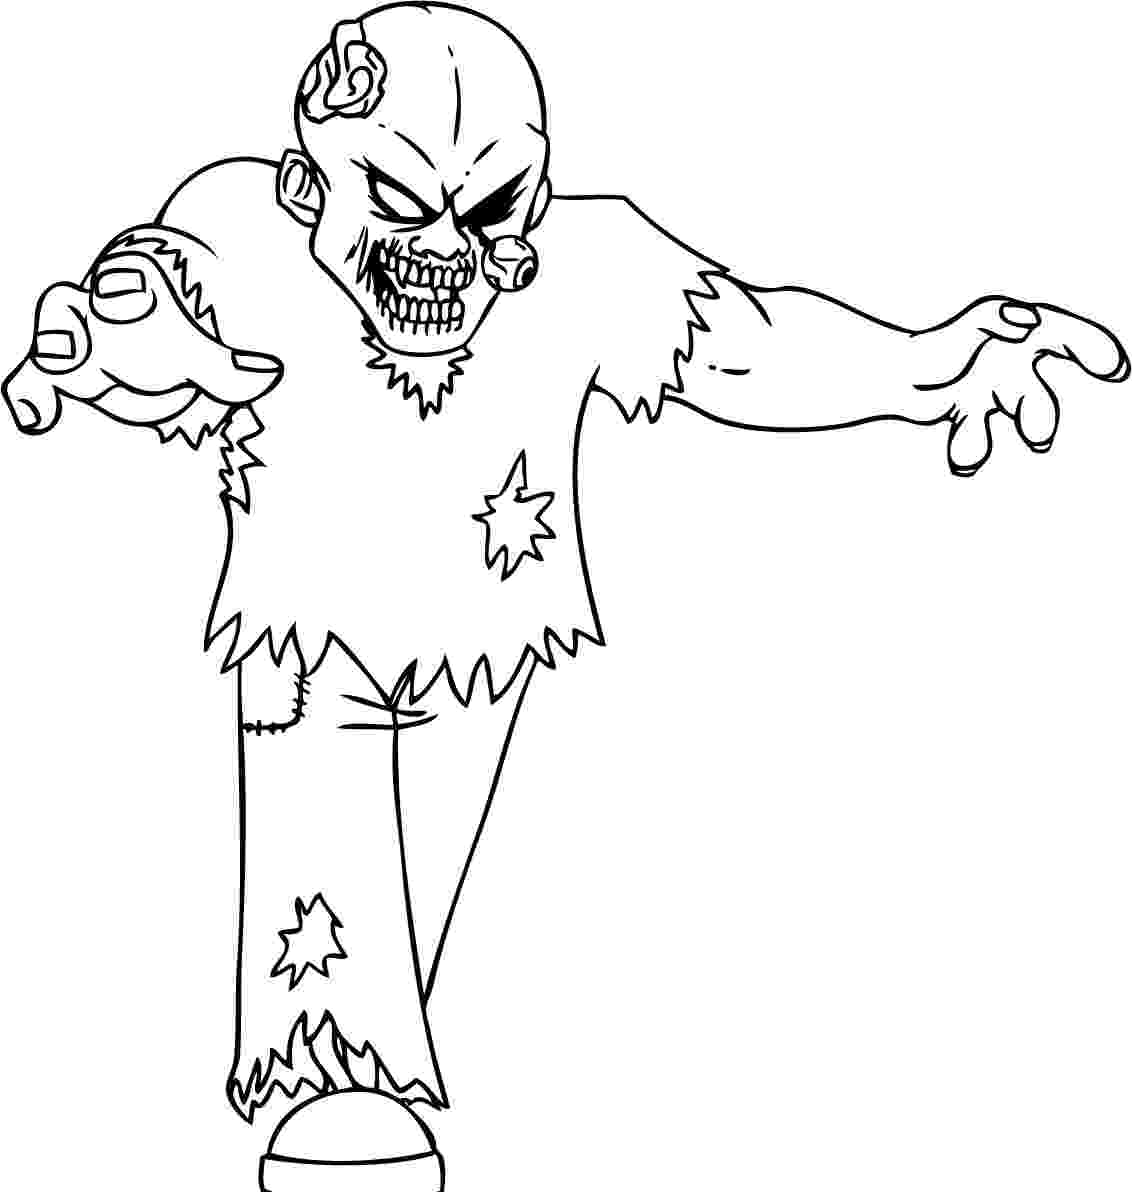 zombie coloring sheets printable halloween zombie coloring pages getcoloringpagescom coloring zombie printable sheets